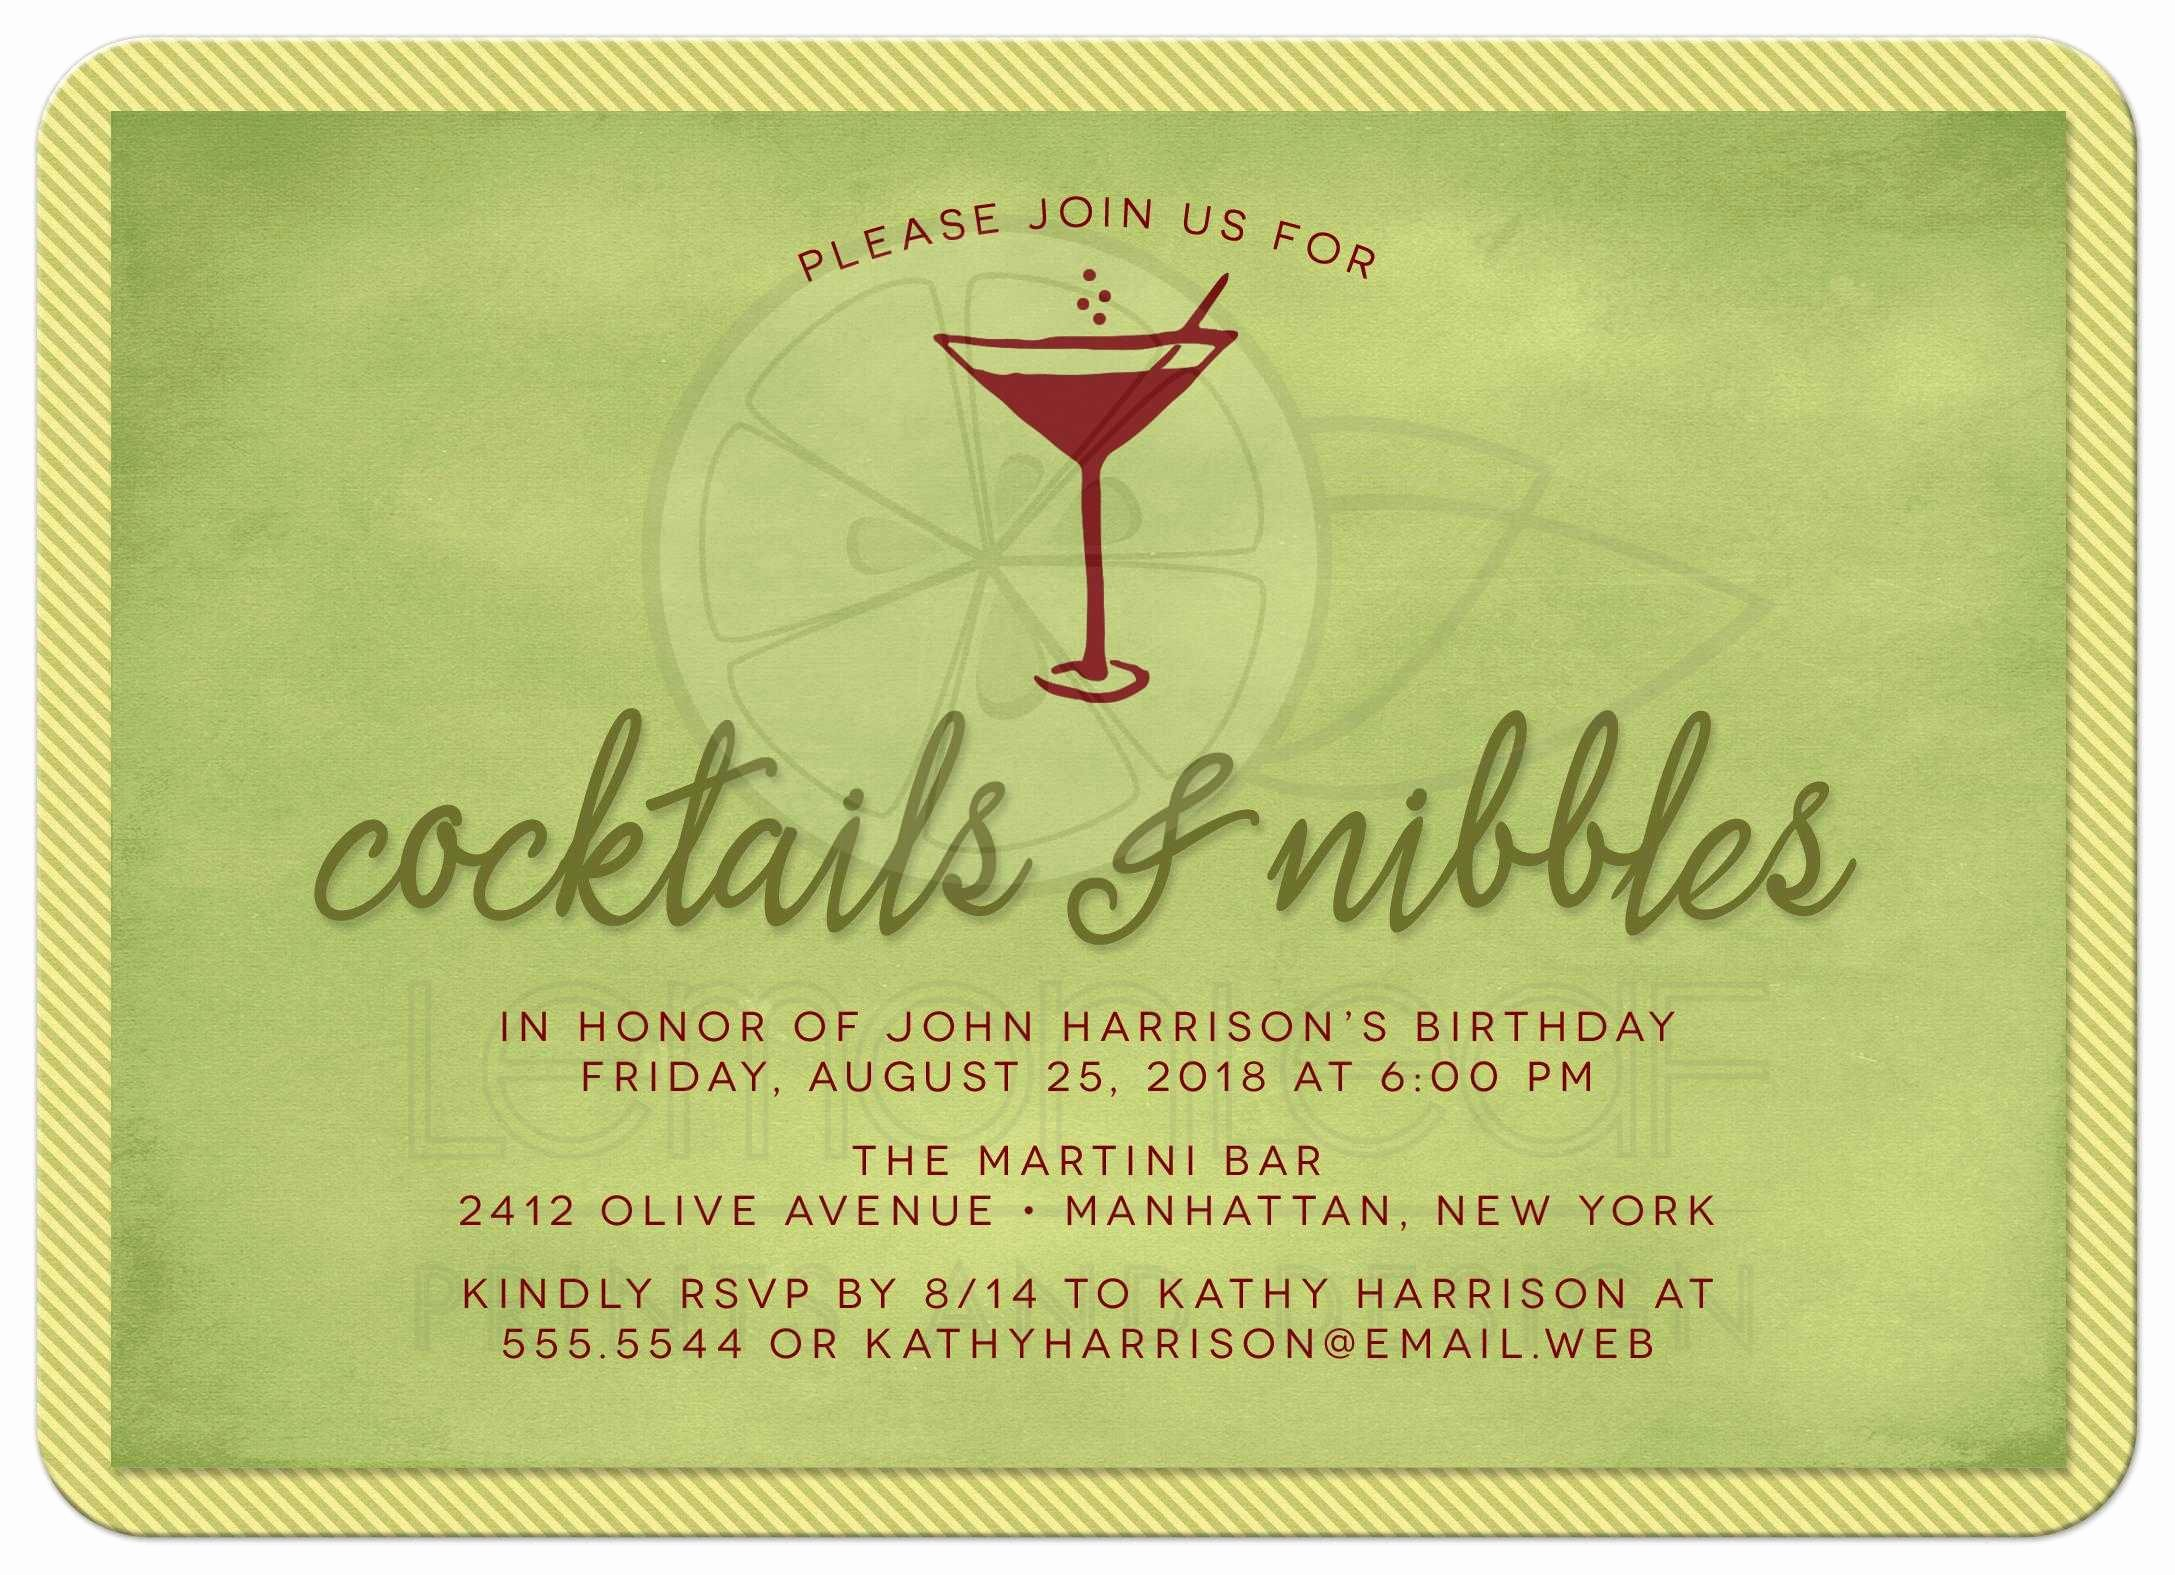 Cocktail Party Invite Templates Fresh Cocktail Party Invitations Cocktails & Nibbles